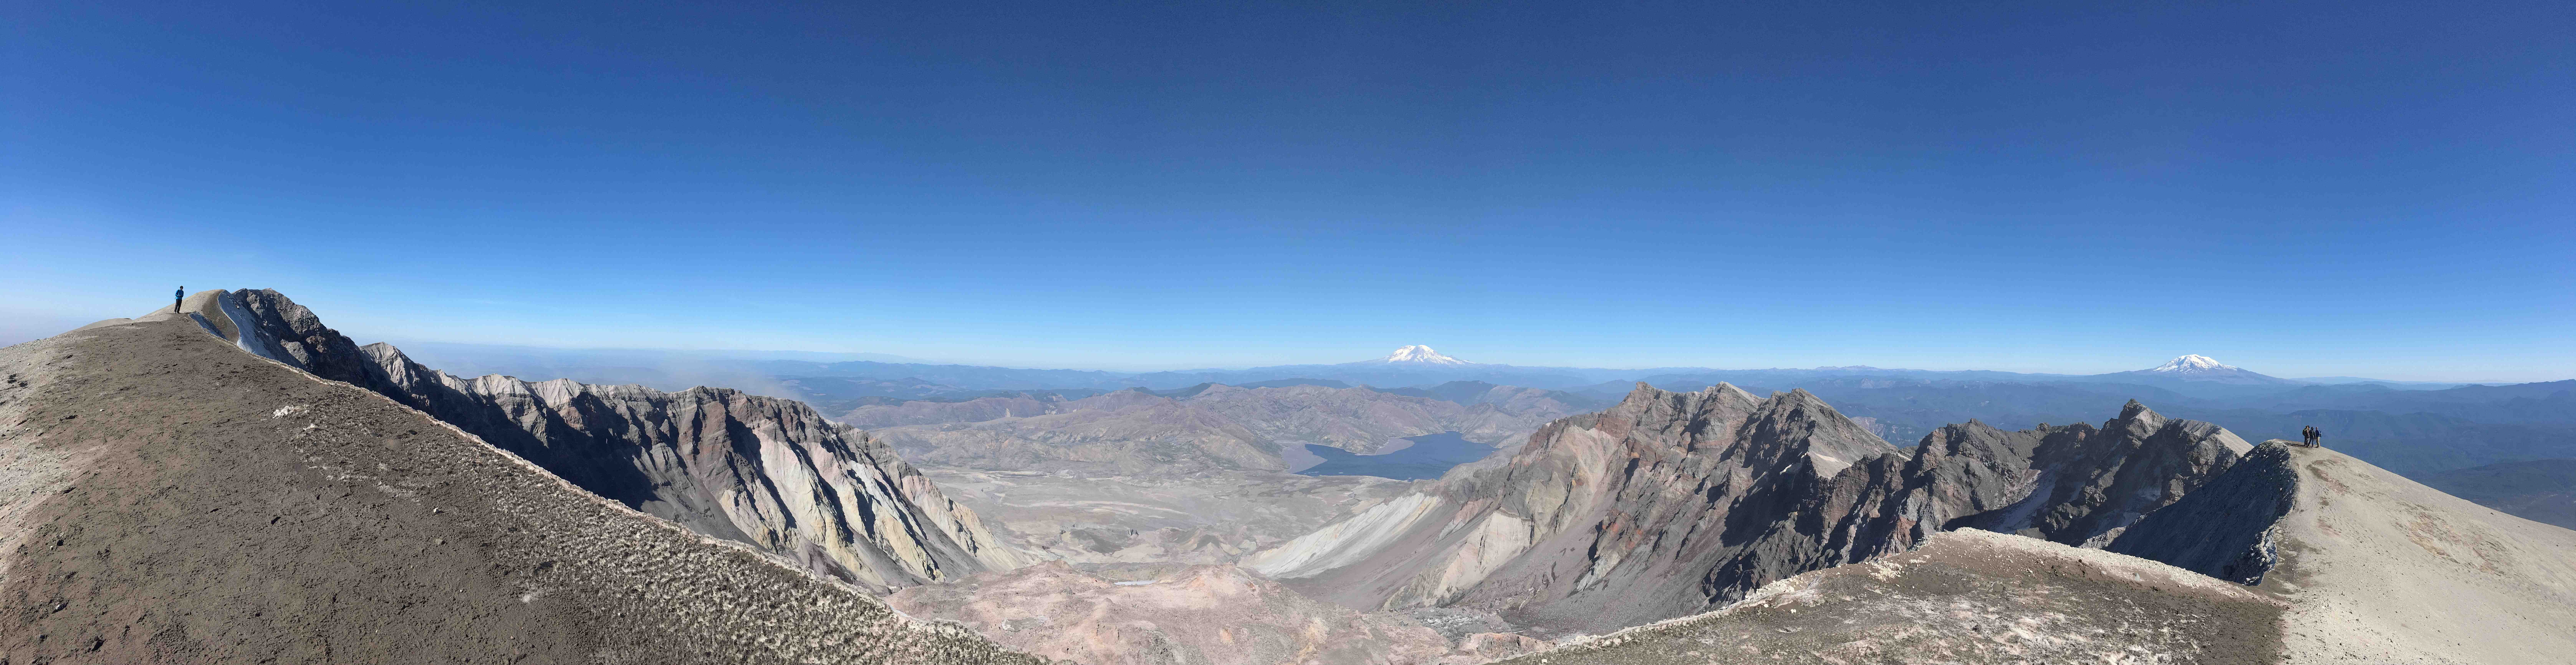 Monitor Ridge {Mount St. Helens}